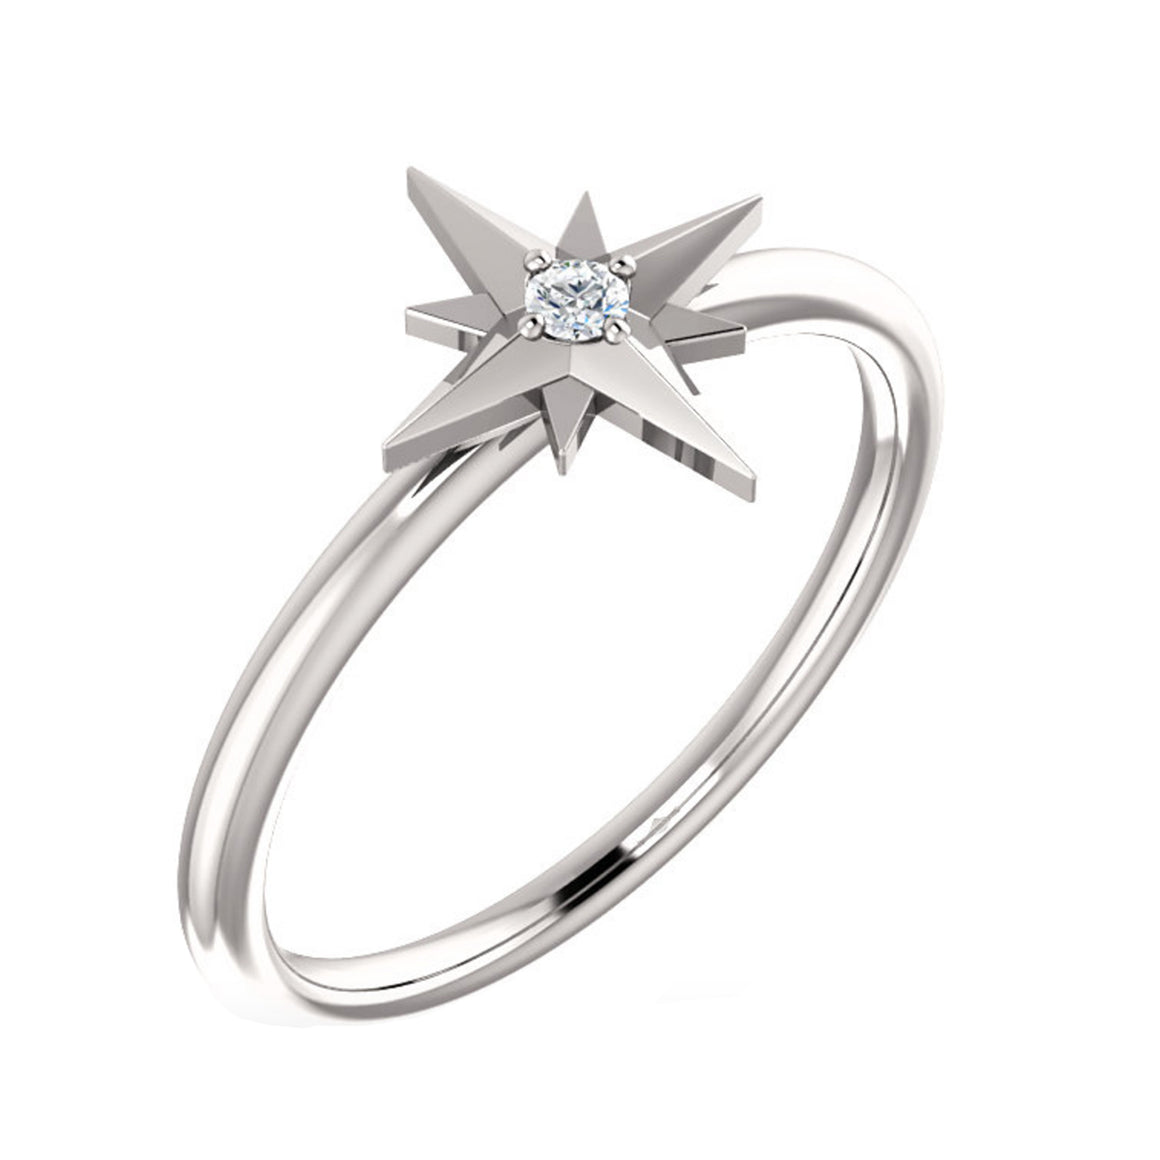 Diamond Starburst Ring in Gold, Platinum or Sterling Silver - Talisman Collection Fine Jewelers